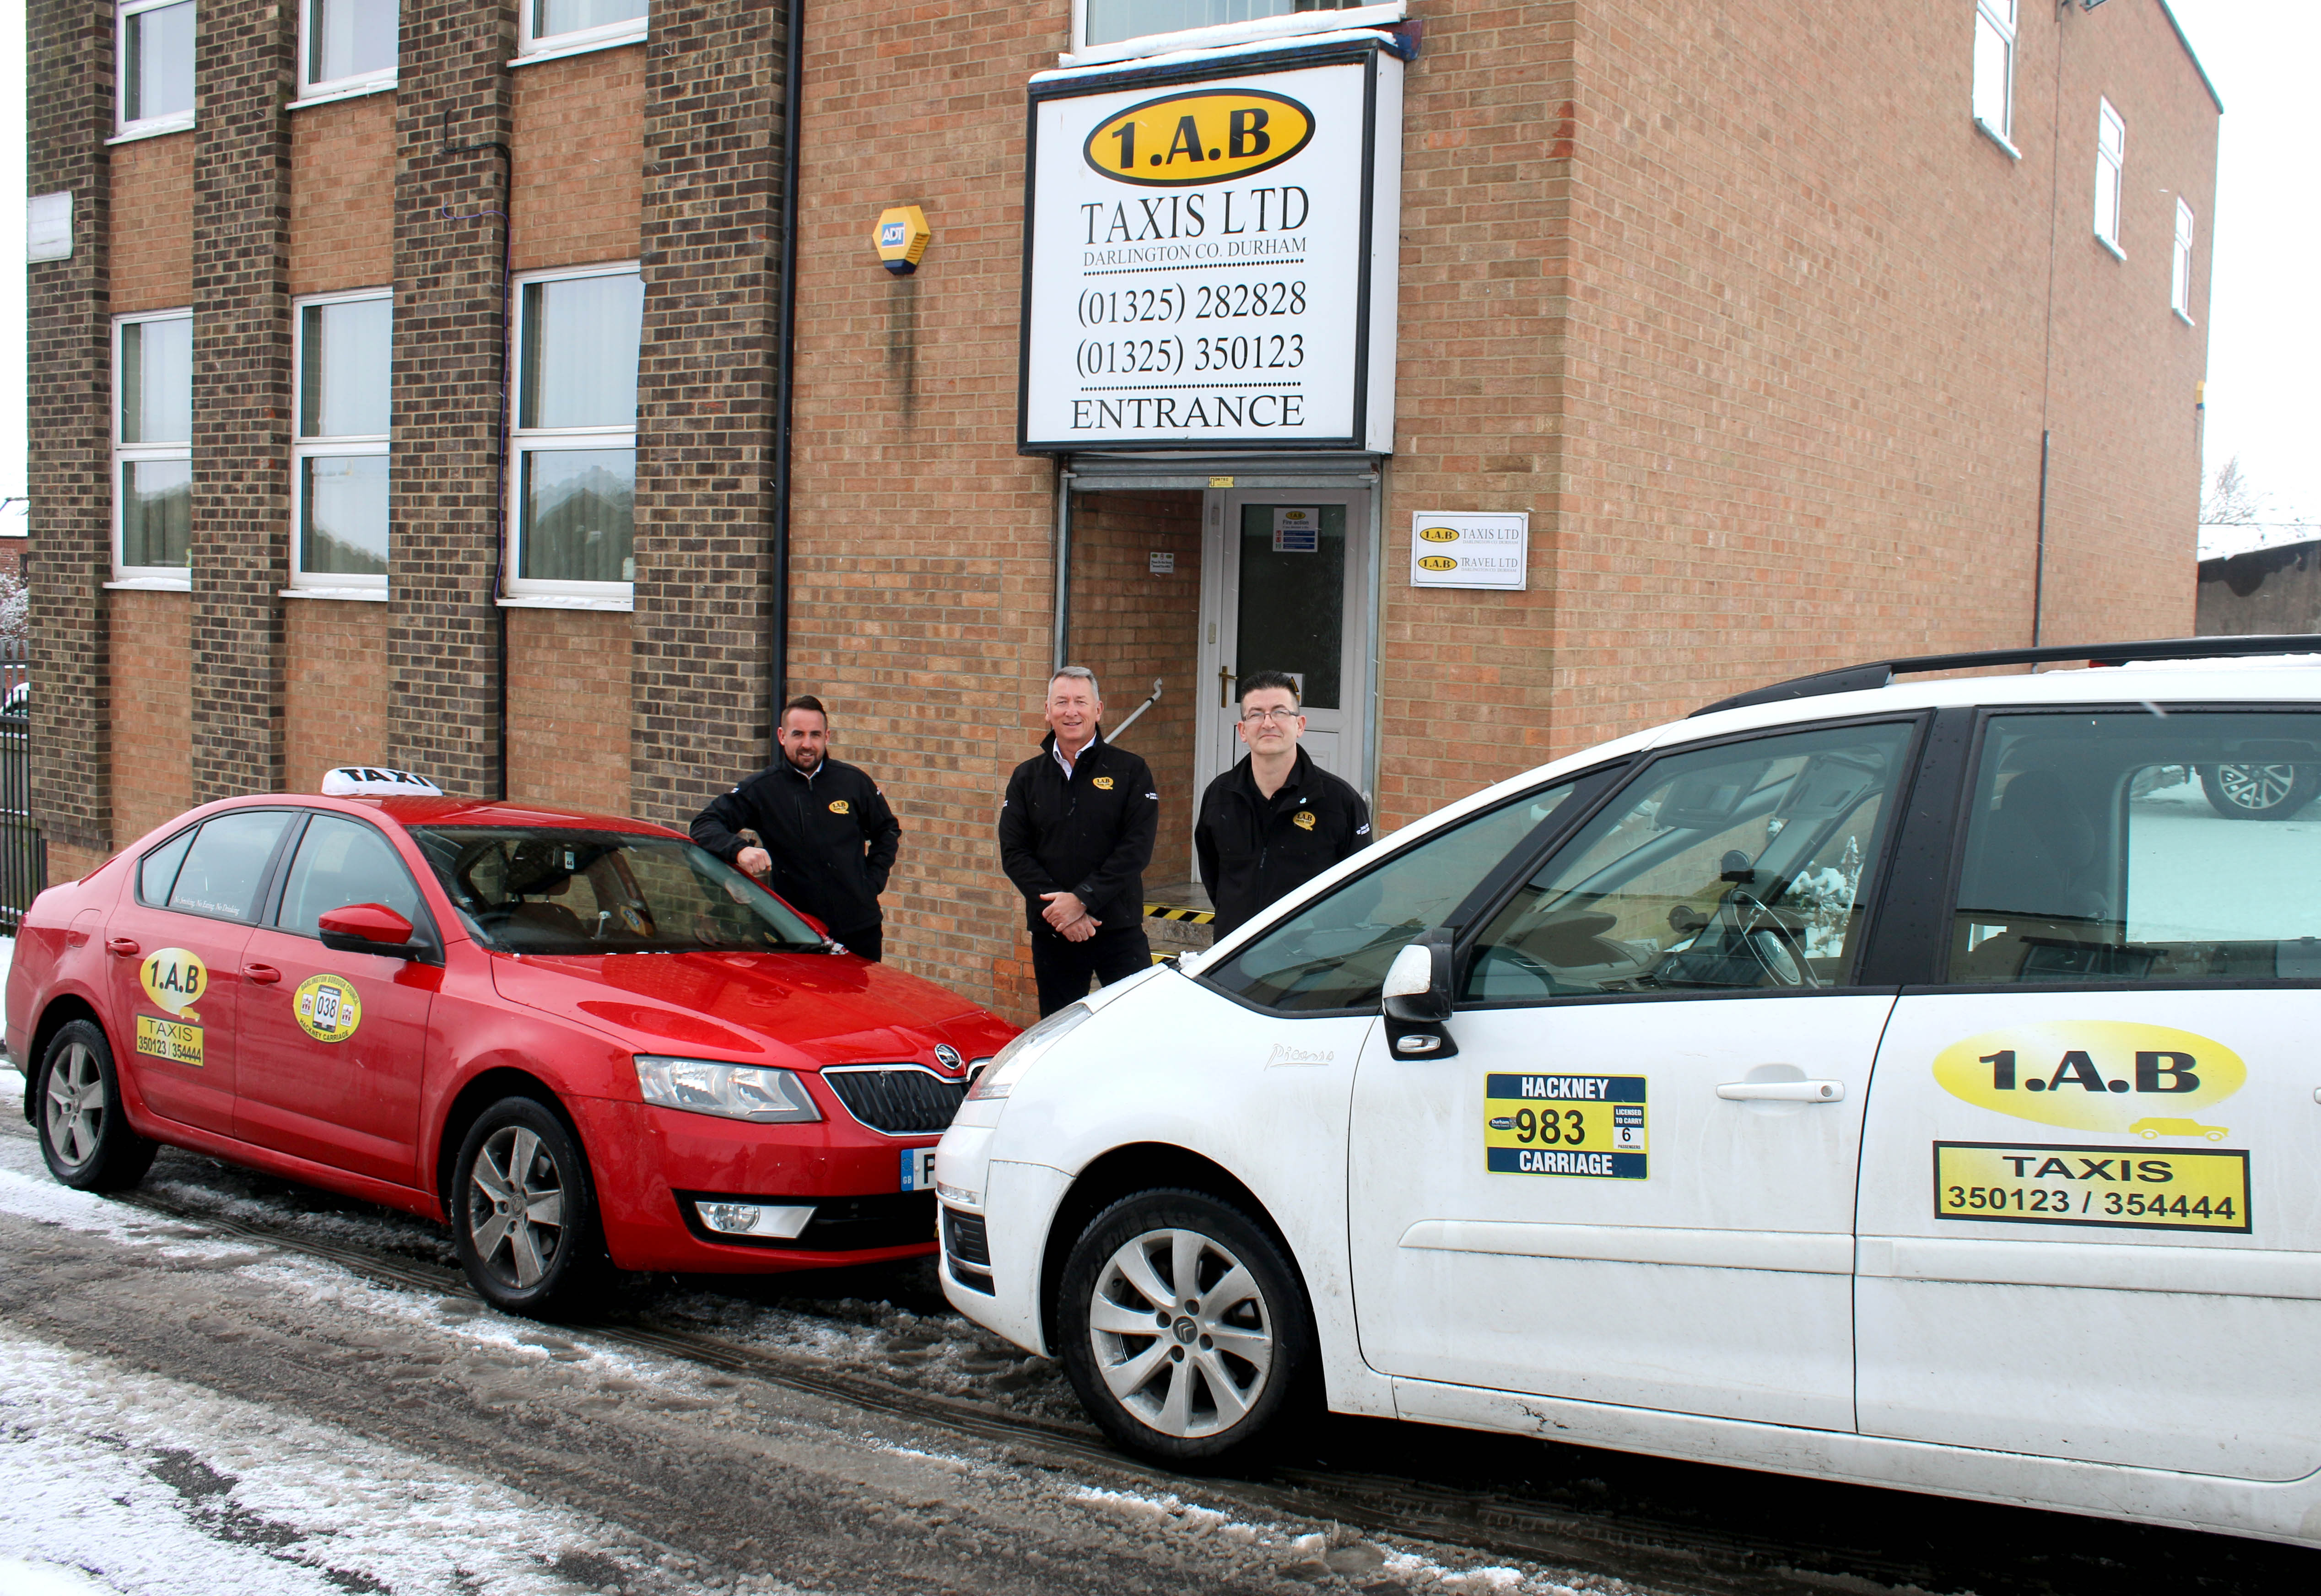 Darlington 1AB Taxi Company Opens in Aycliffe